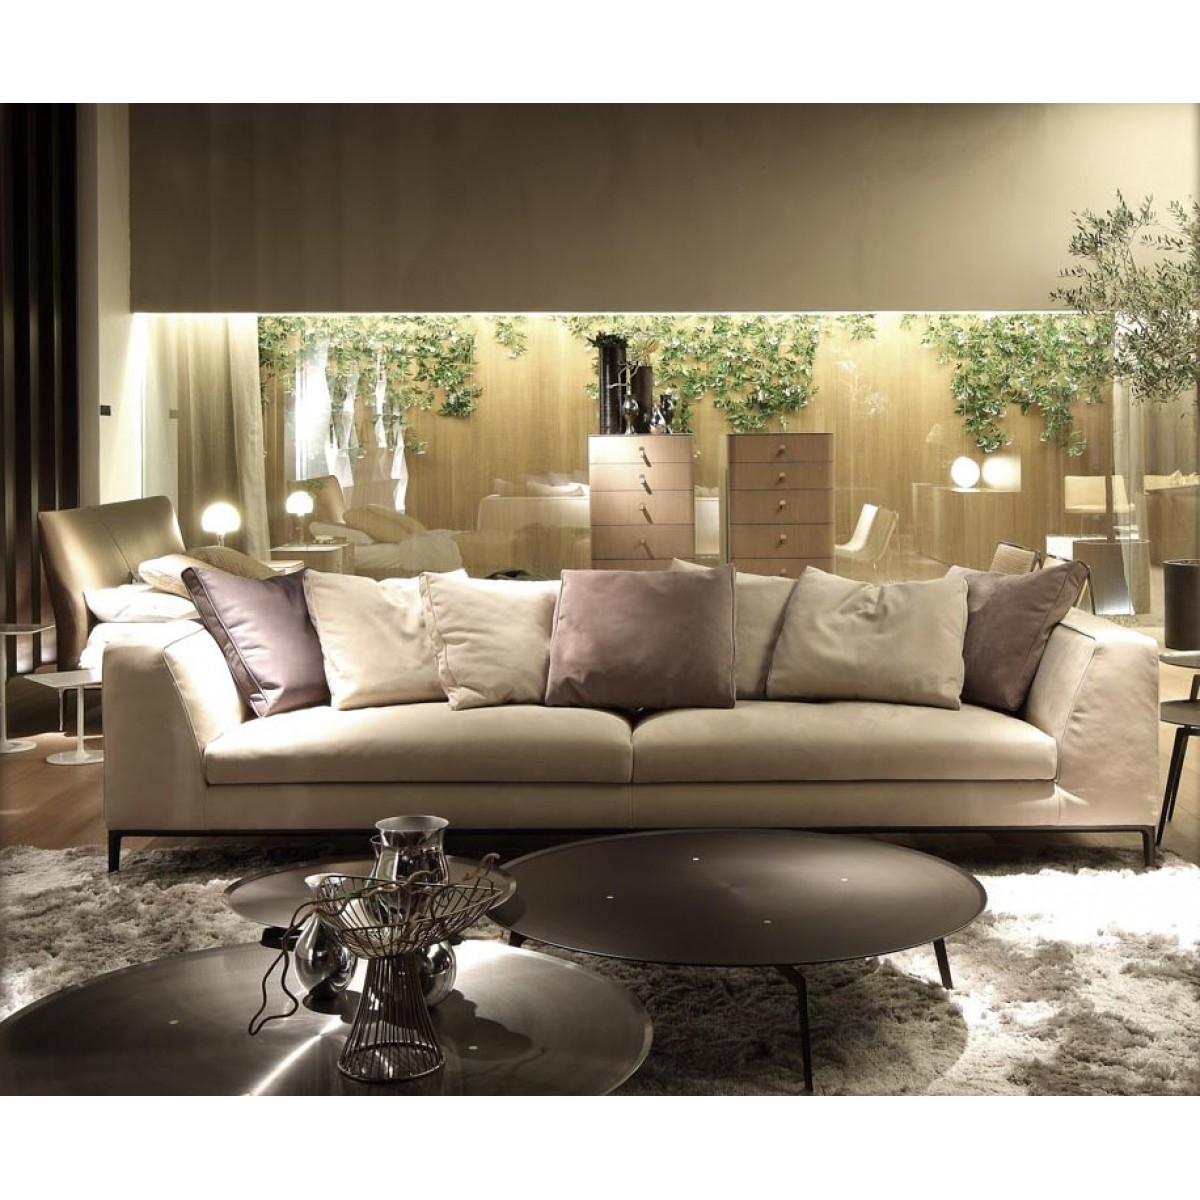 Well Known Luxury Extra Large Sofa 83 With Additional Modern Sofa Ideas With With Extra Large Sofas (View 19 of 20)